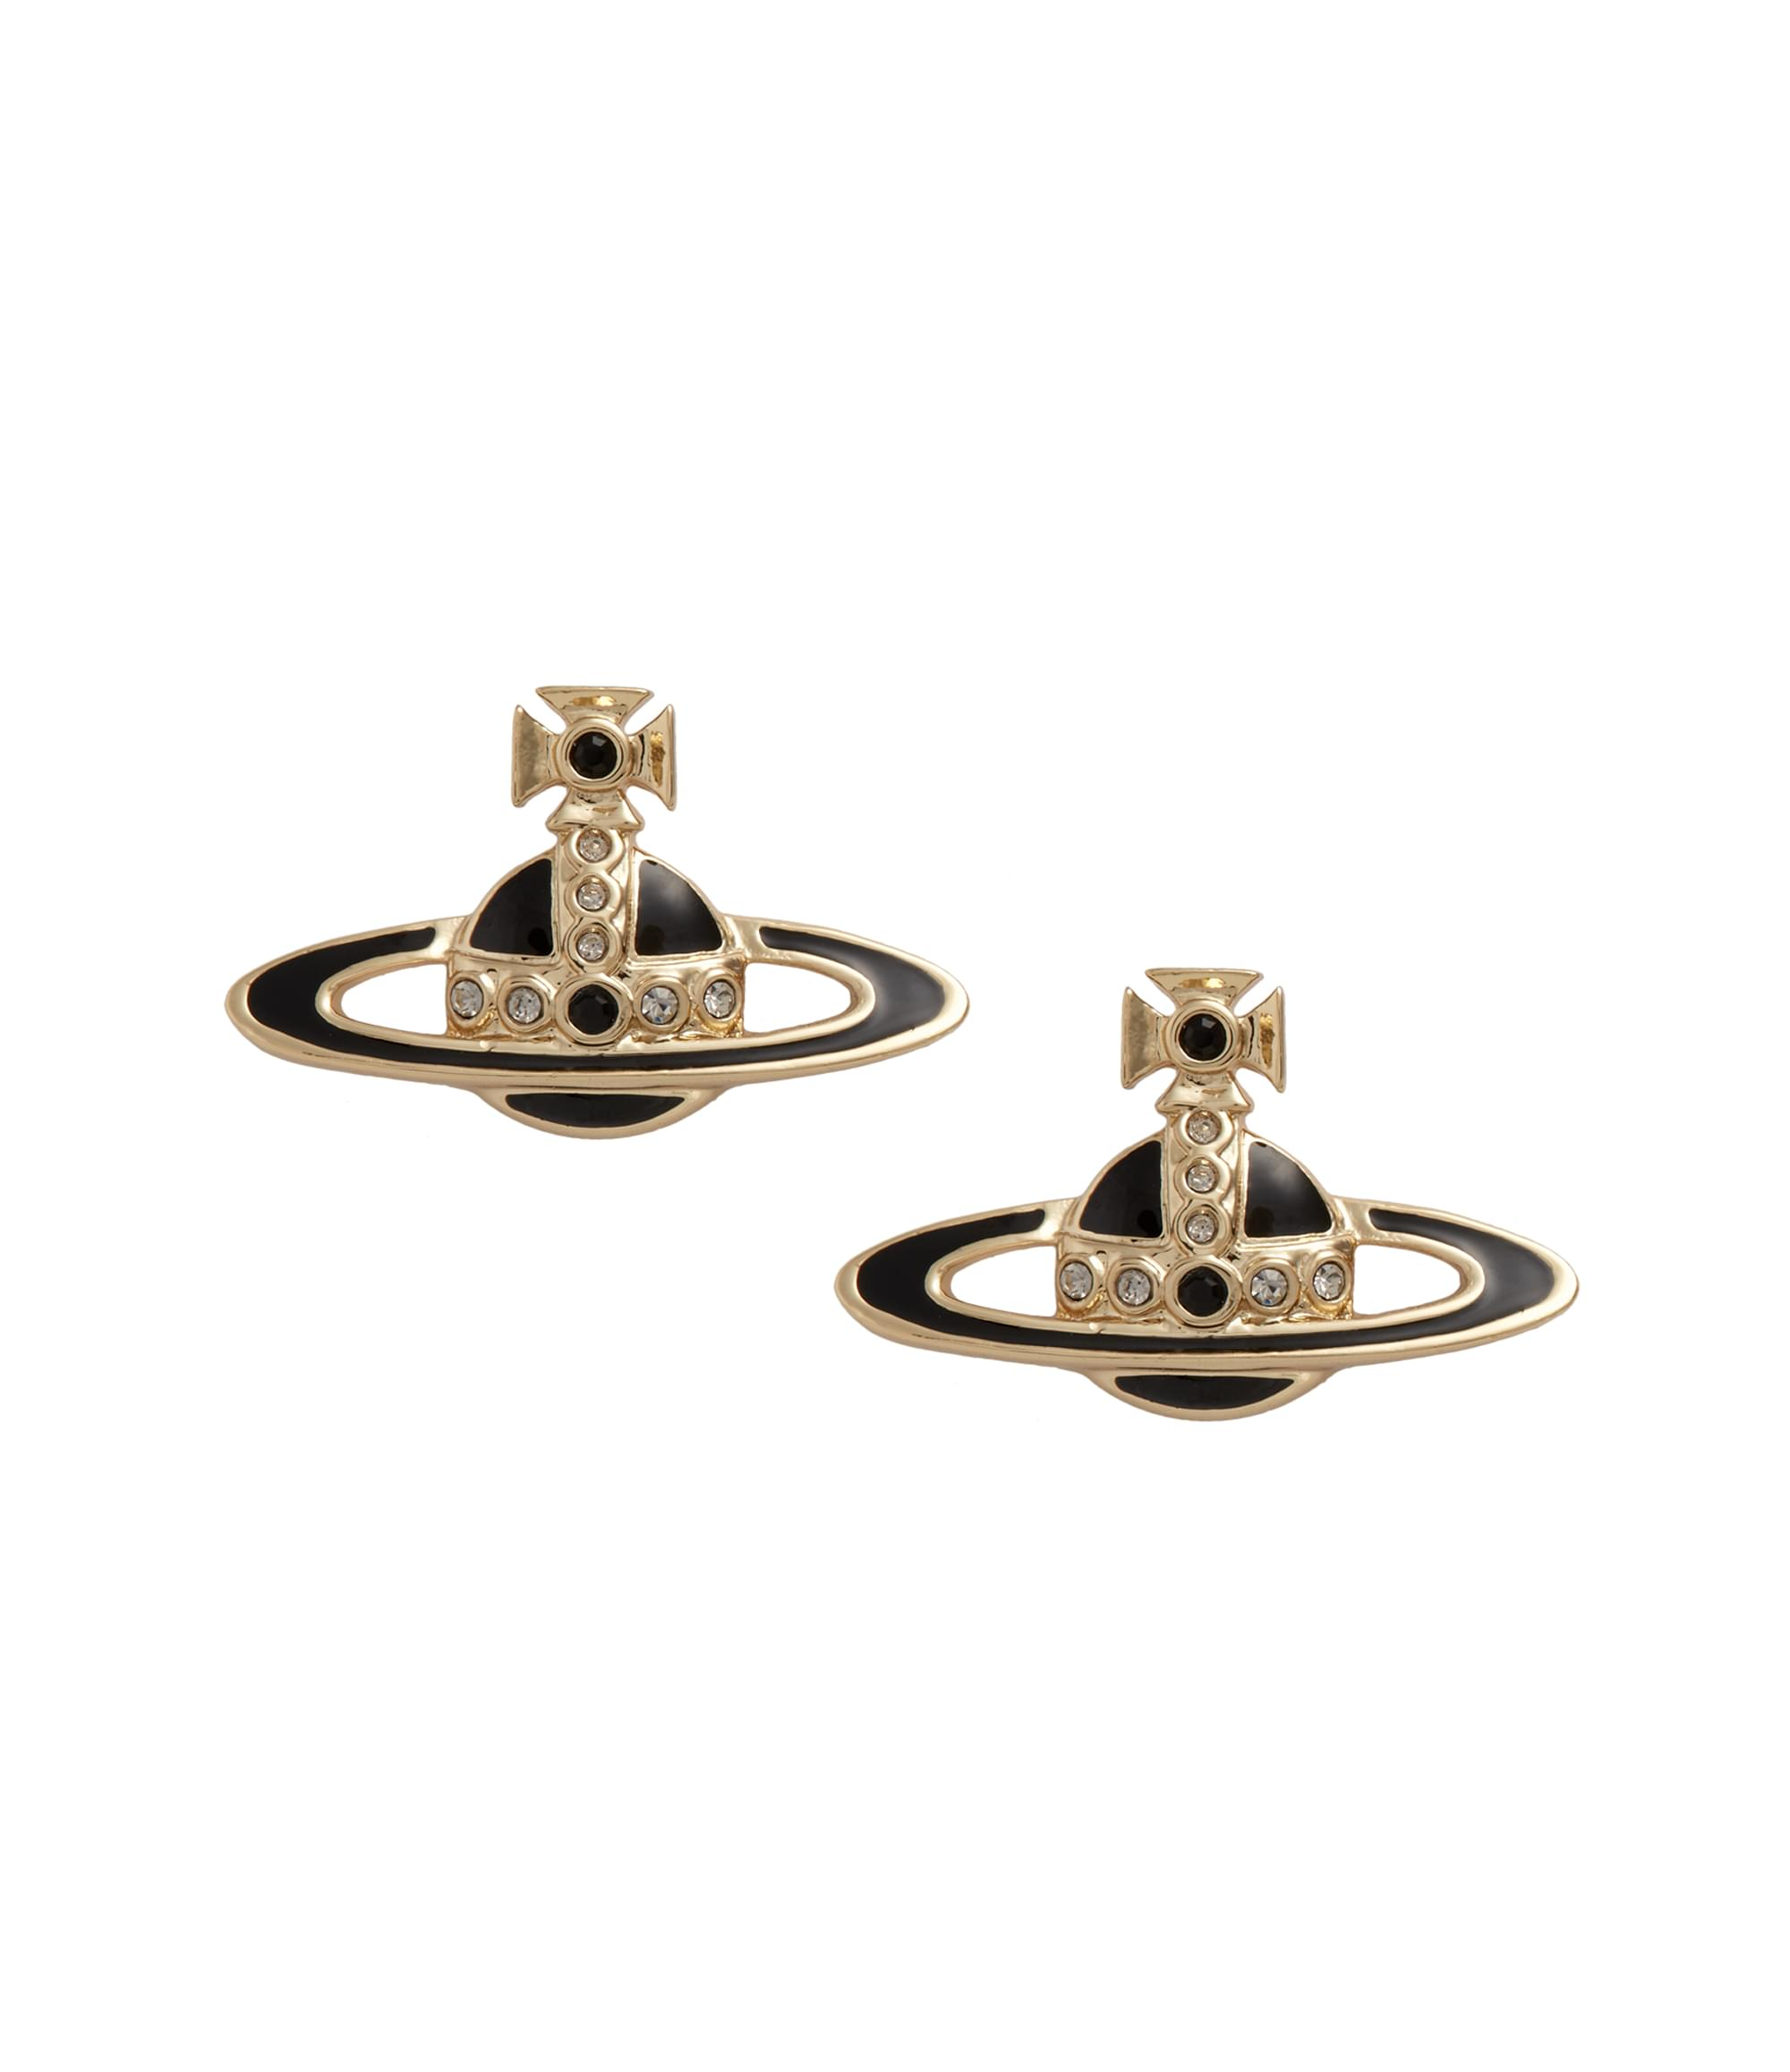 Vivienne Westwood Black Small Neo Bas Relief Earrings